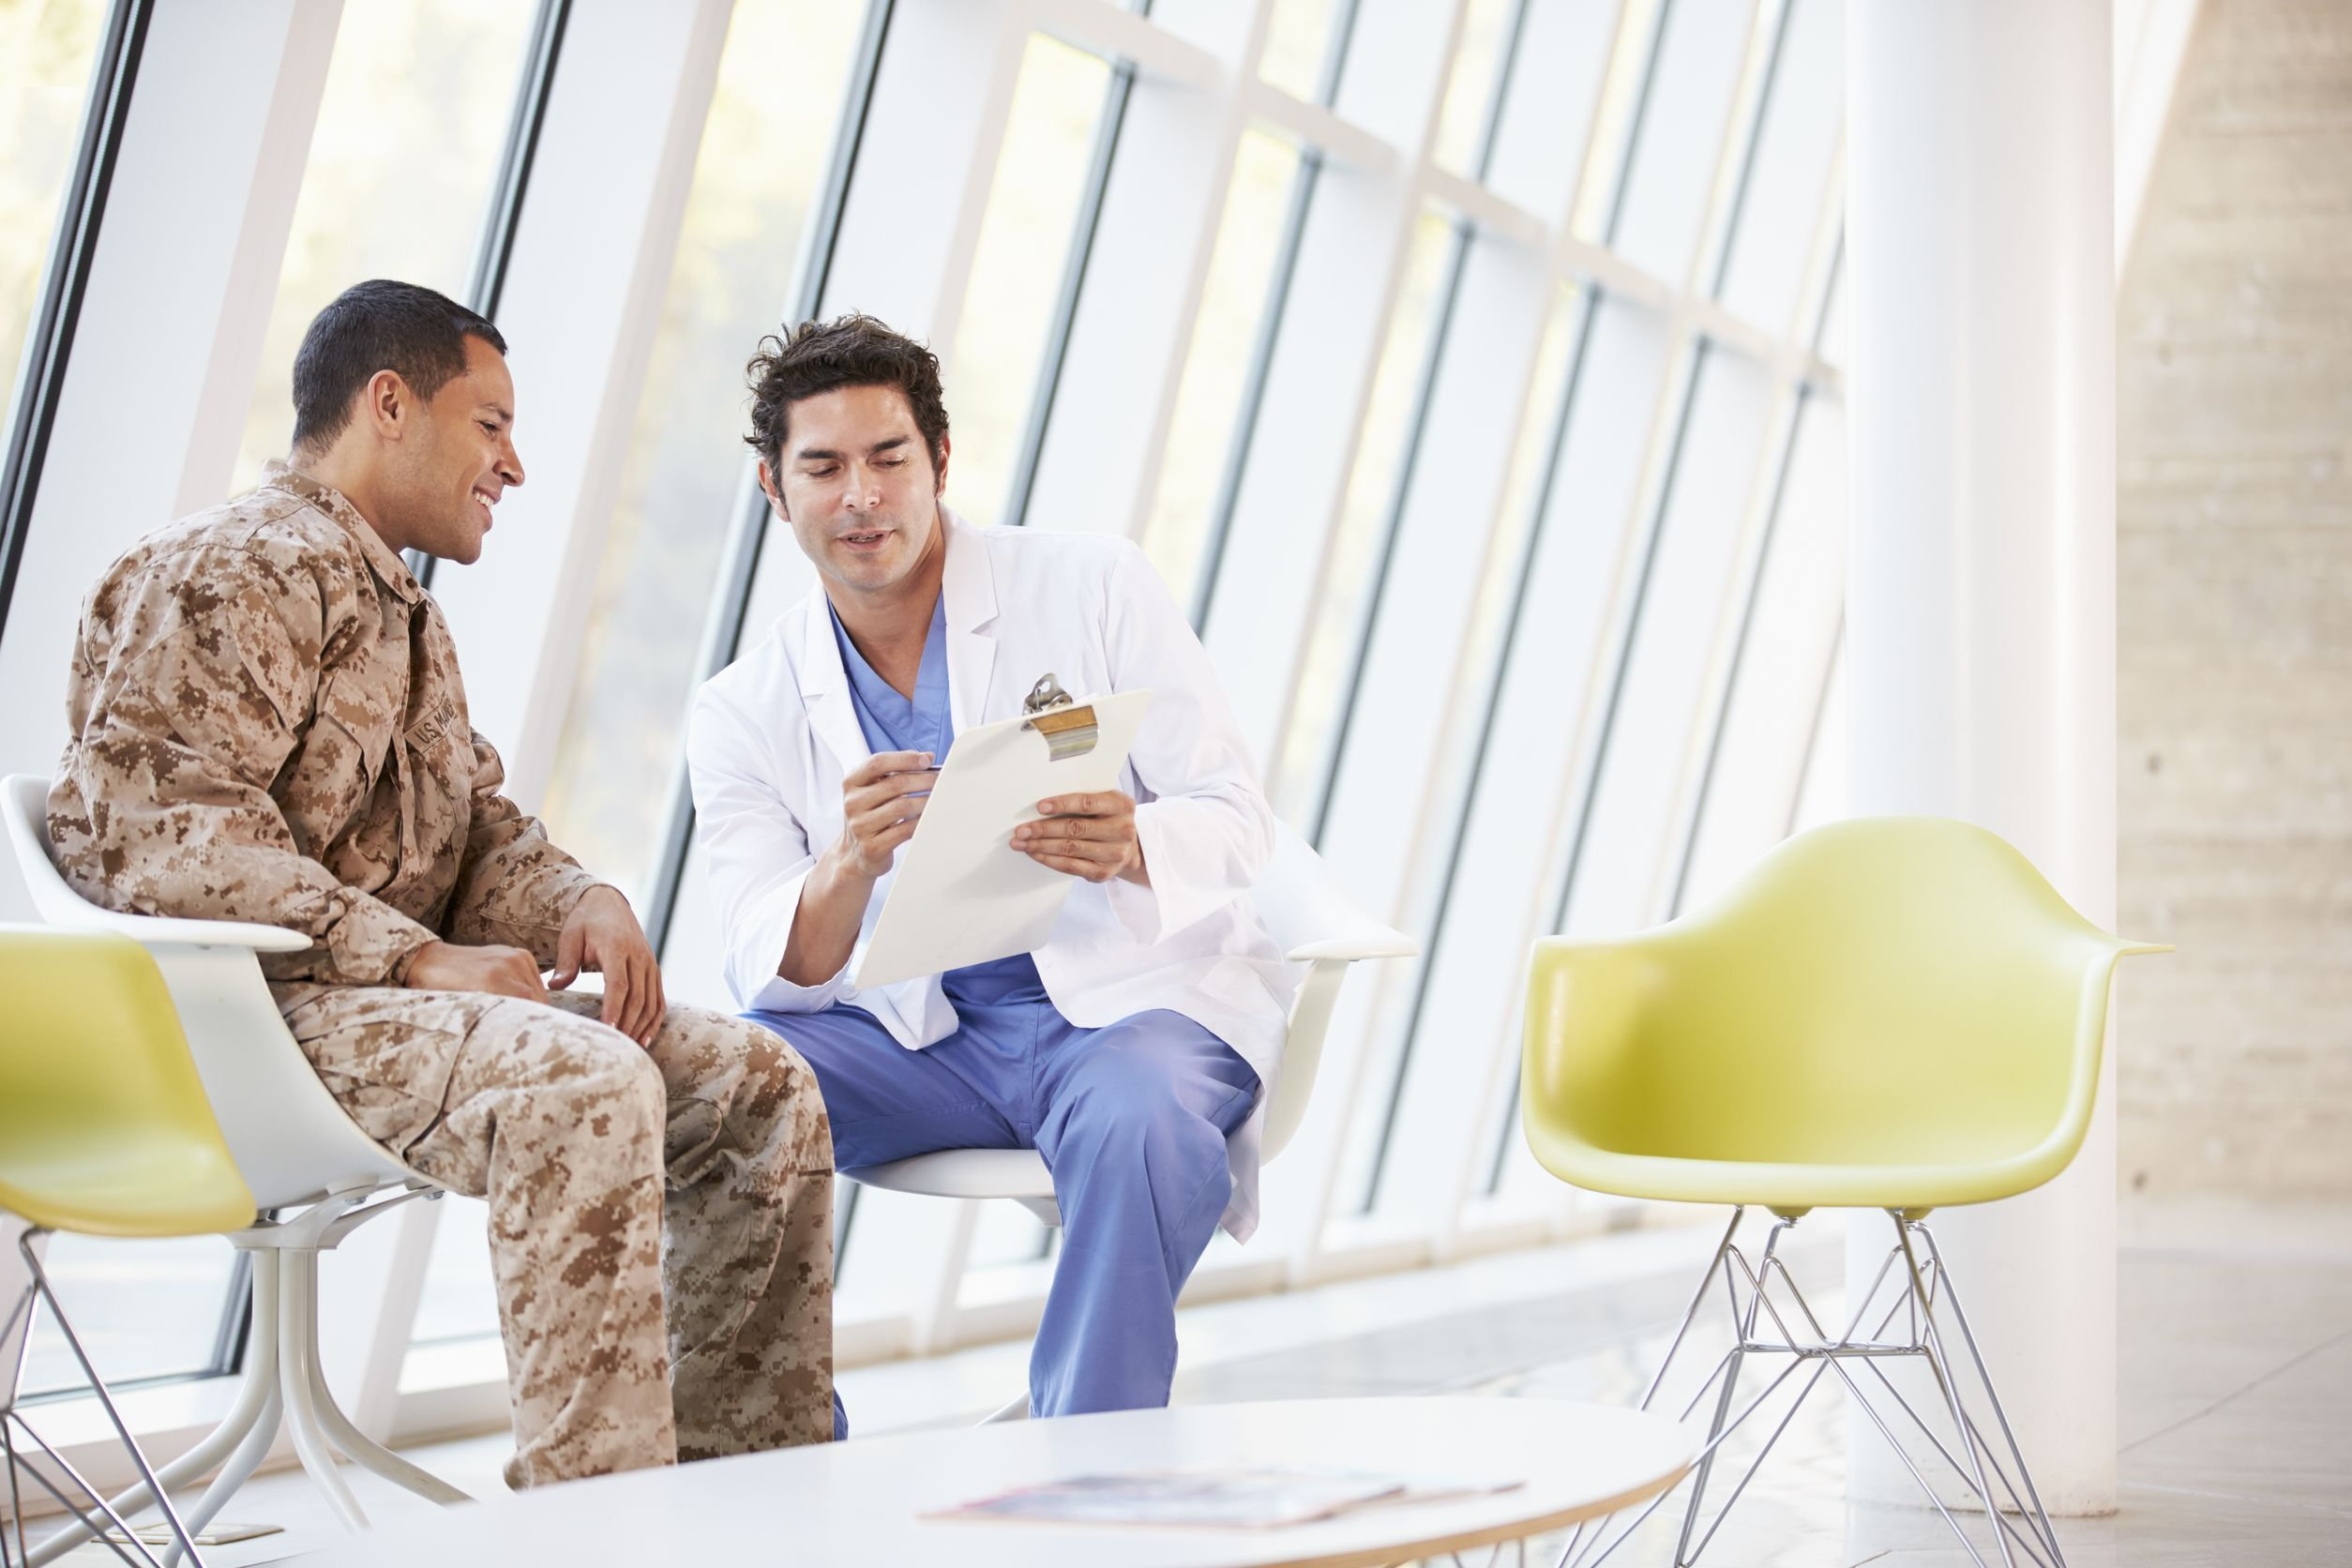 A doctor with a clipboard speaks to a patient wearing fatigues